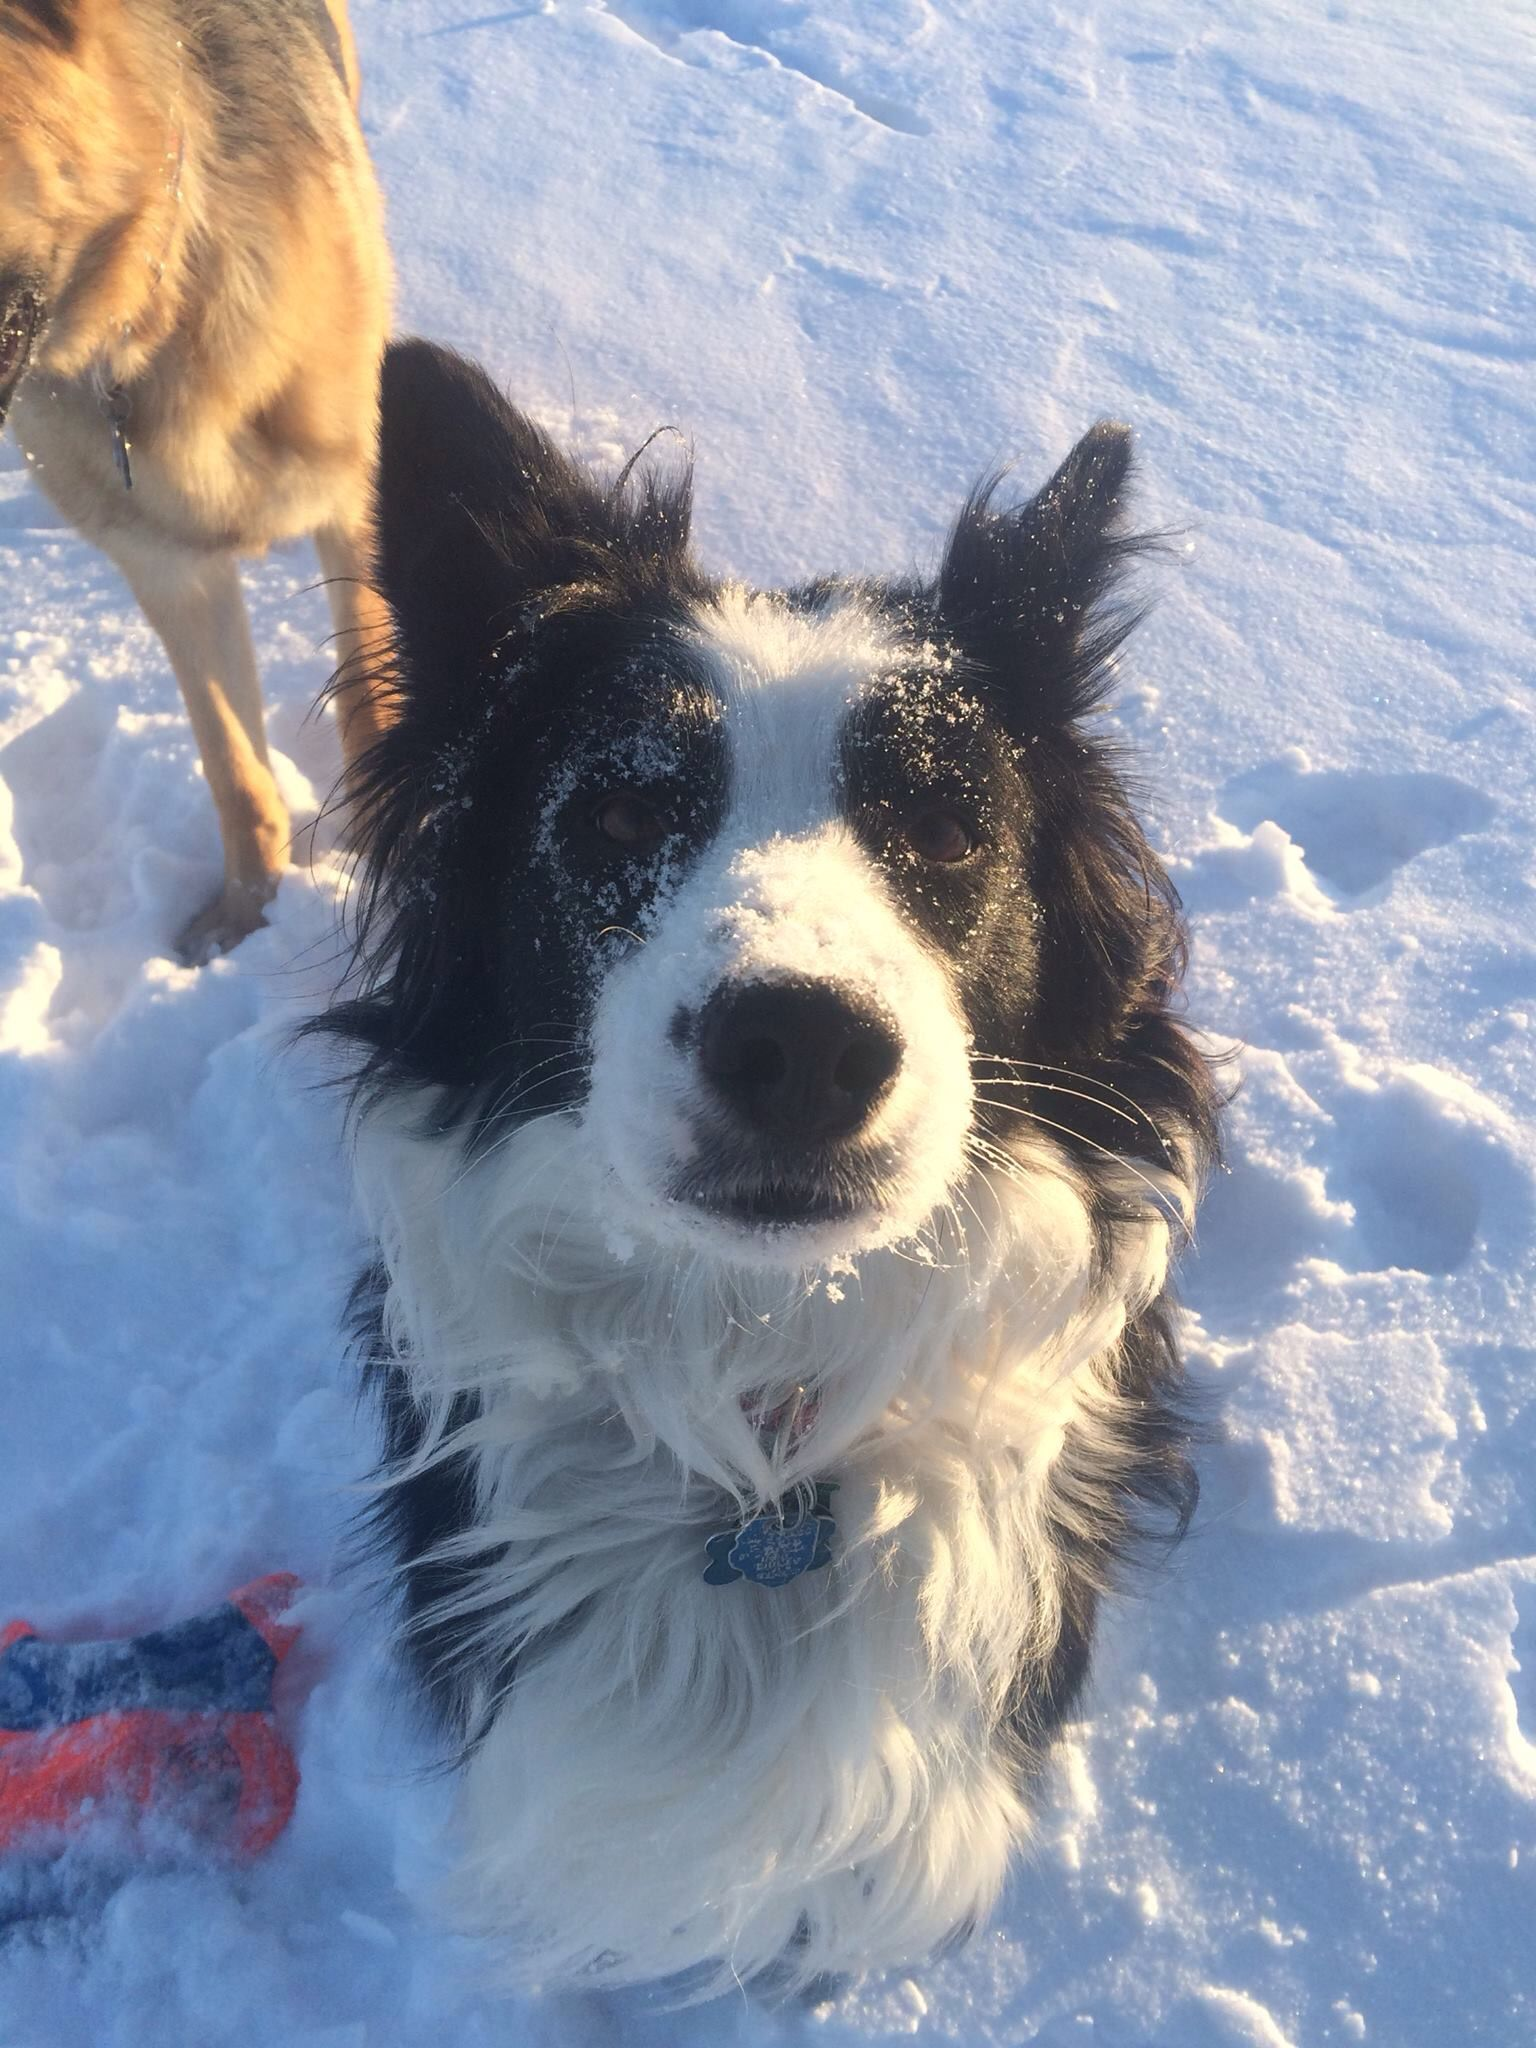 Snow dog (With images) Border collie, Best dogs, Dogs